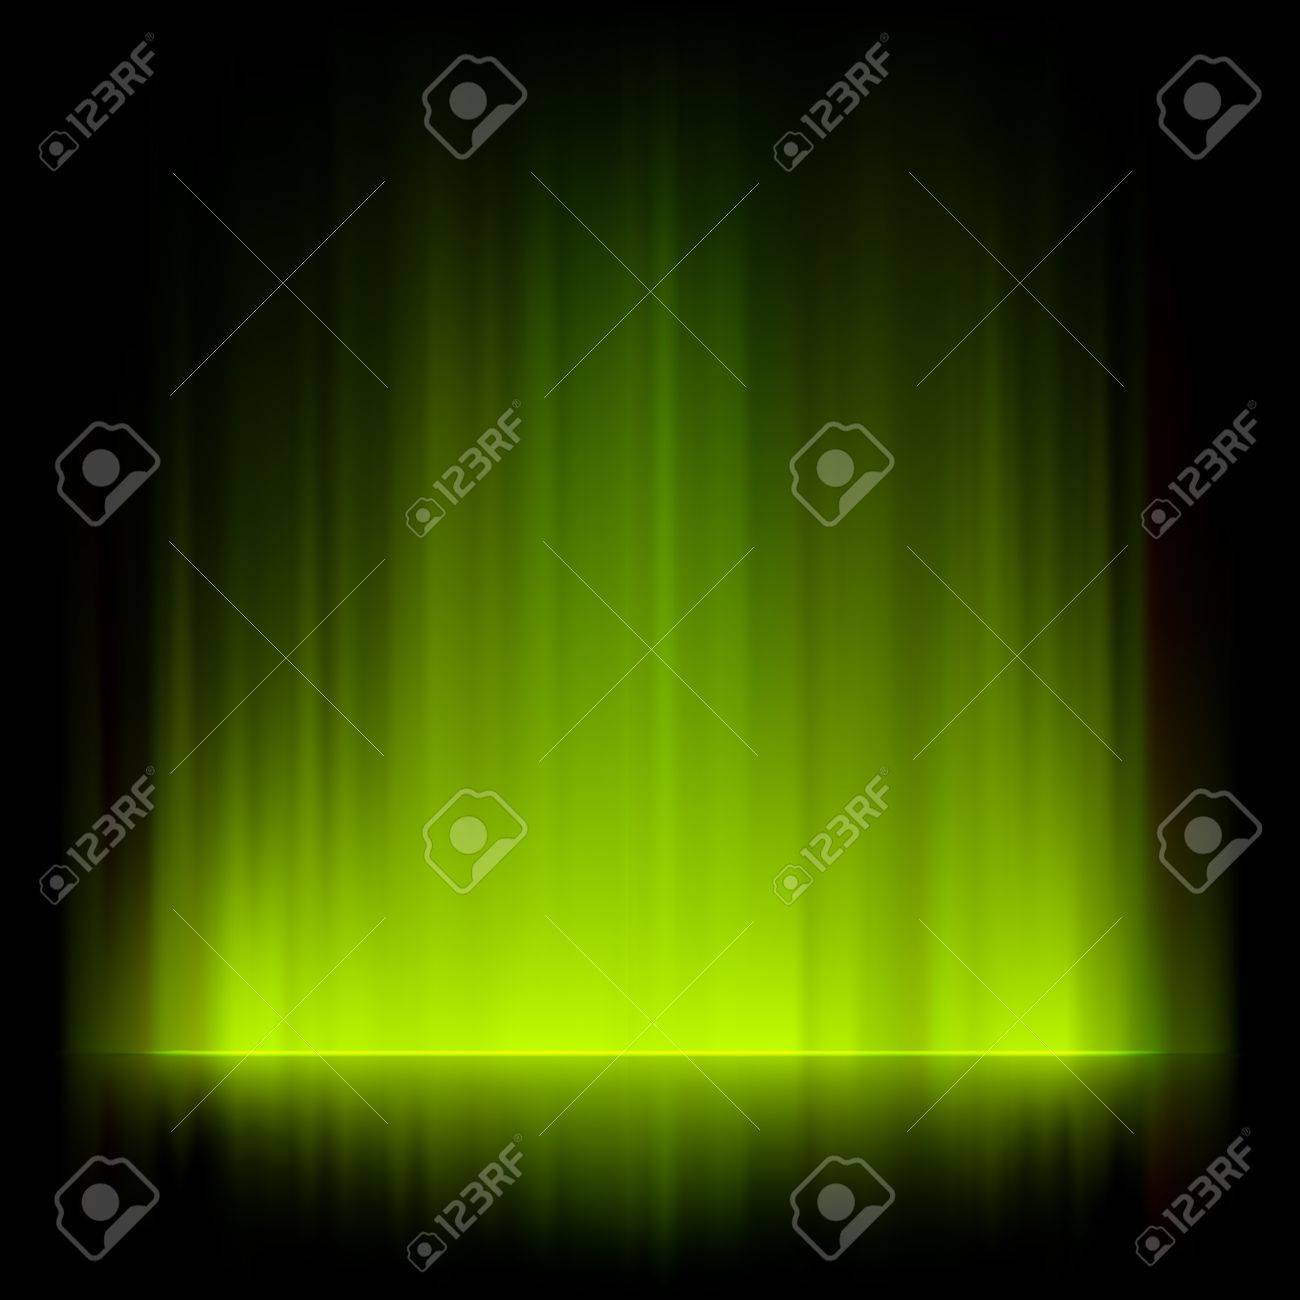 Abstract fire lights background. Stock Vector - 10308573